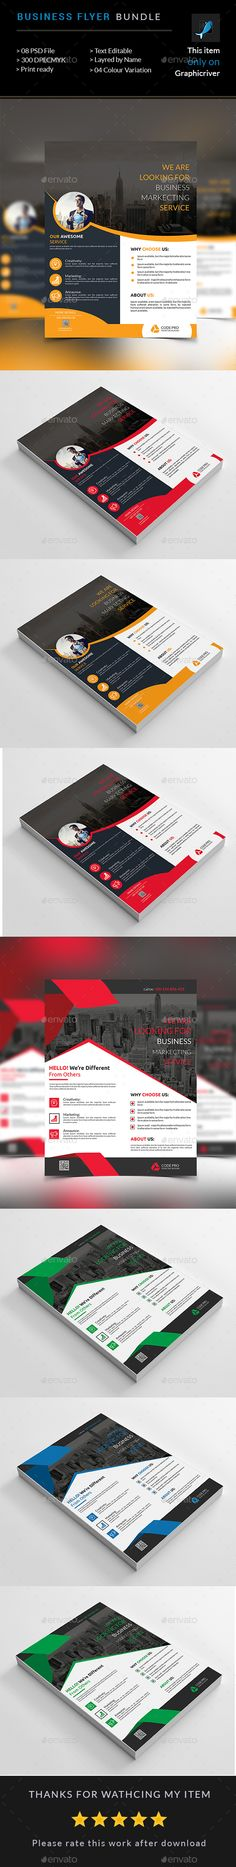 Smartphone Repair Service Flyer  Smartphone Flyer Template And